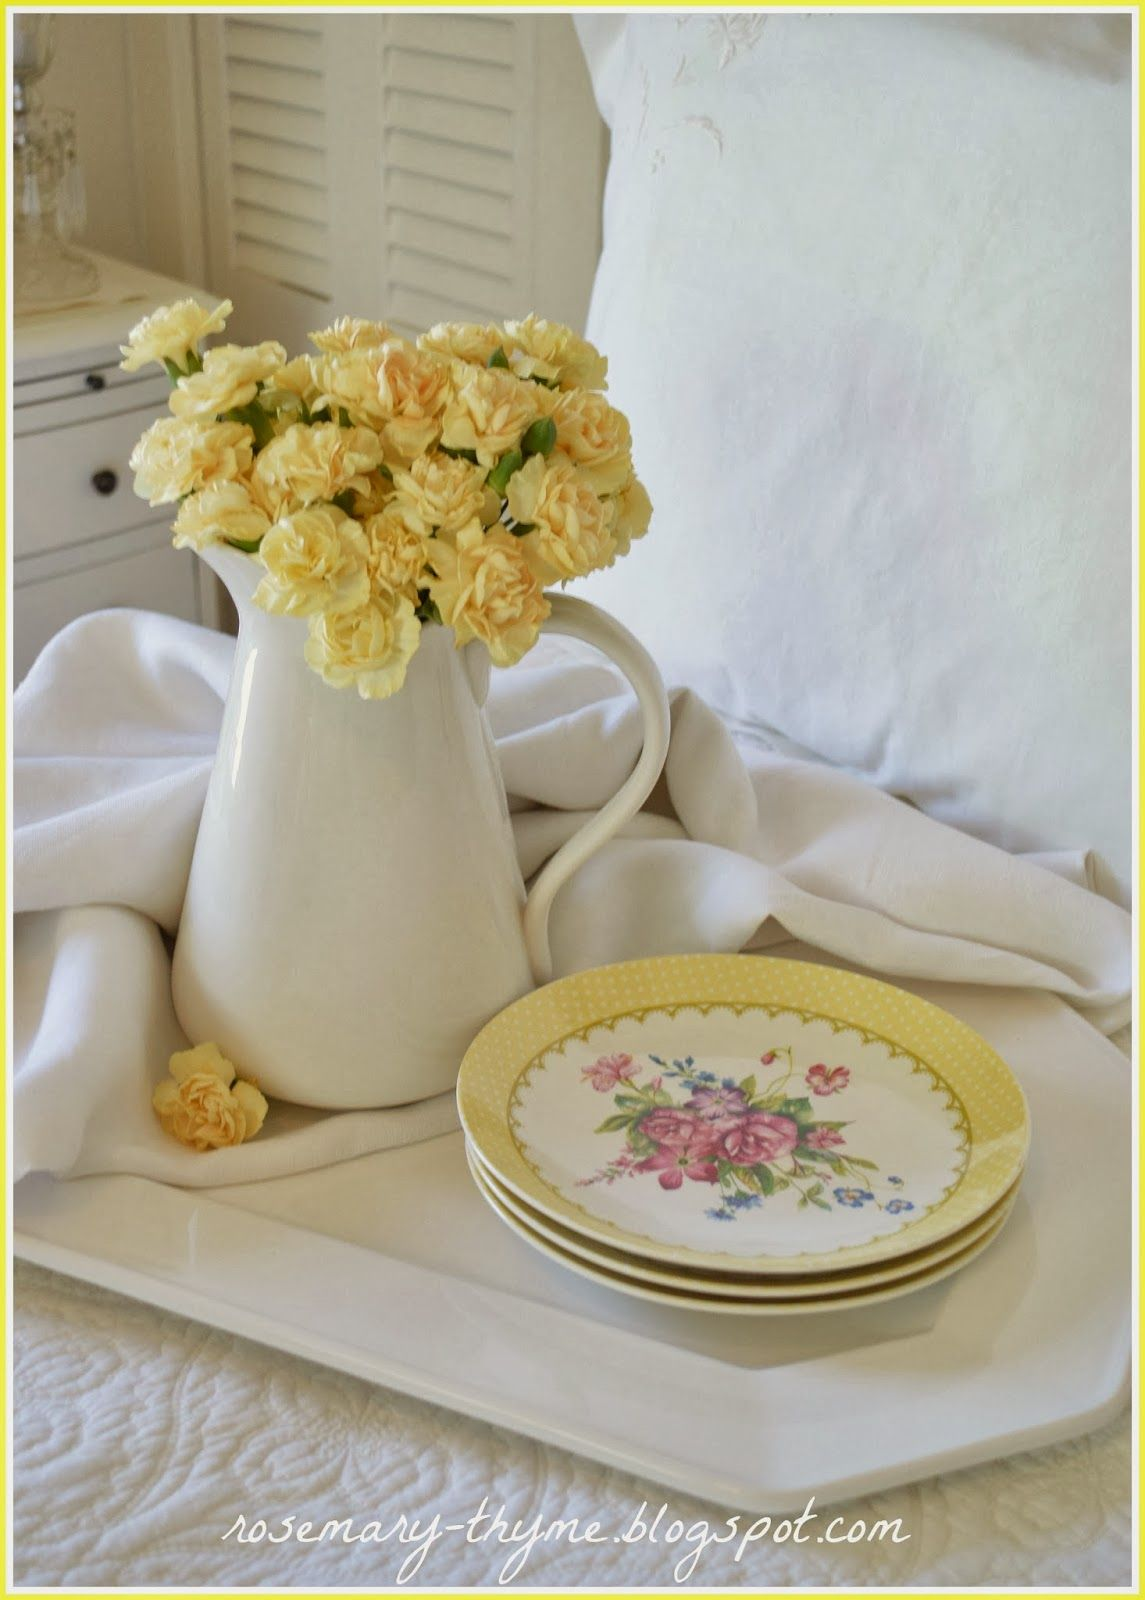 Lovely post featuring yellow and white. Rosemary and Thyme: Light and Pretty